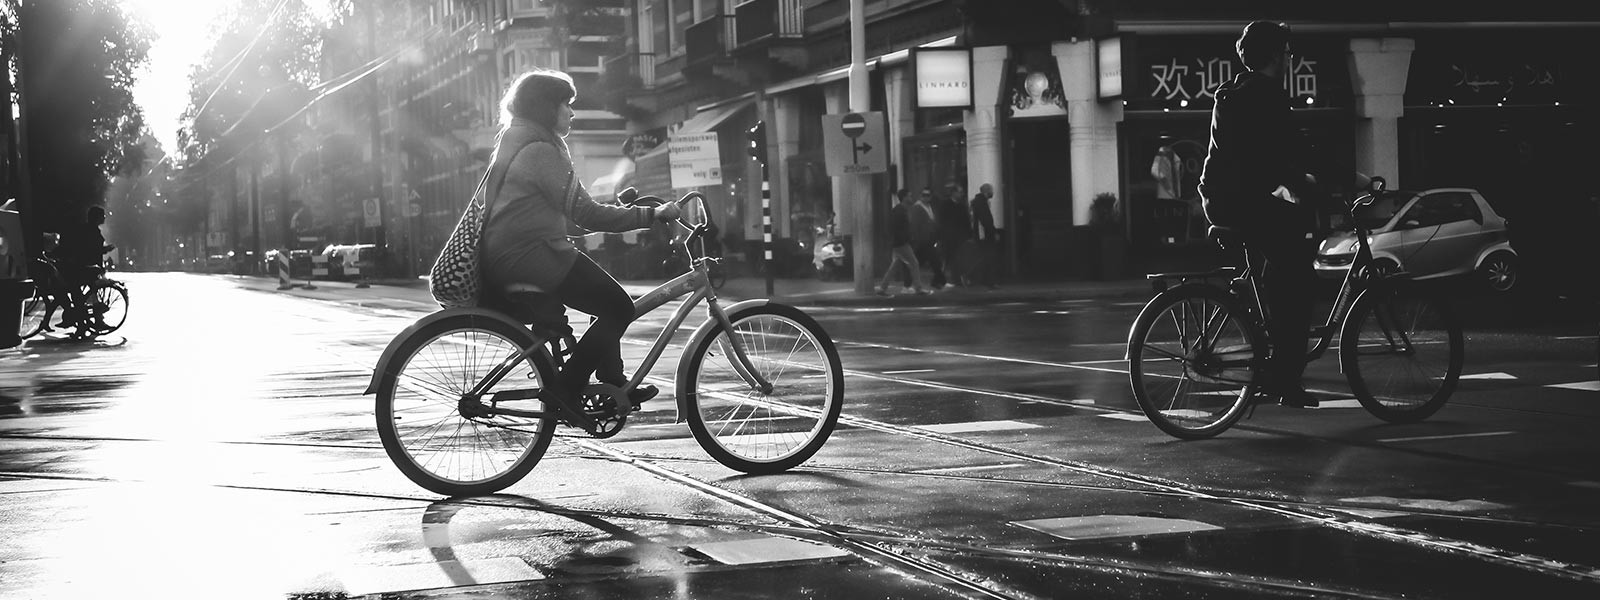 Bicycle Street Photography winter 2016